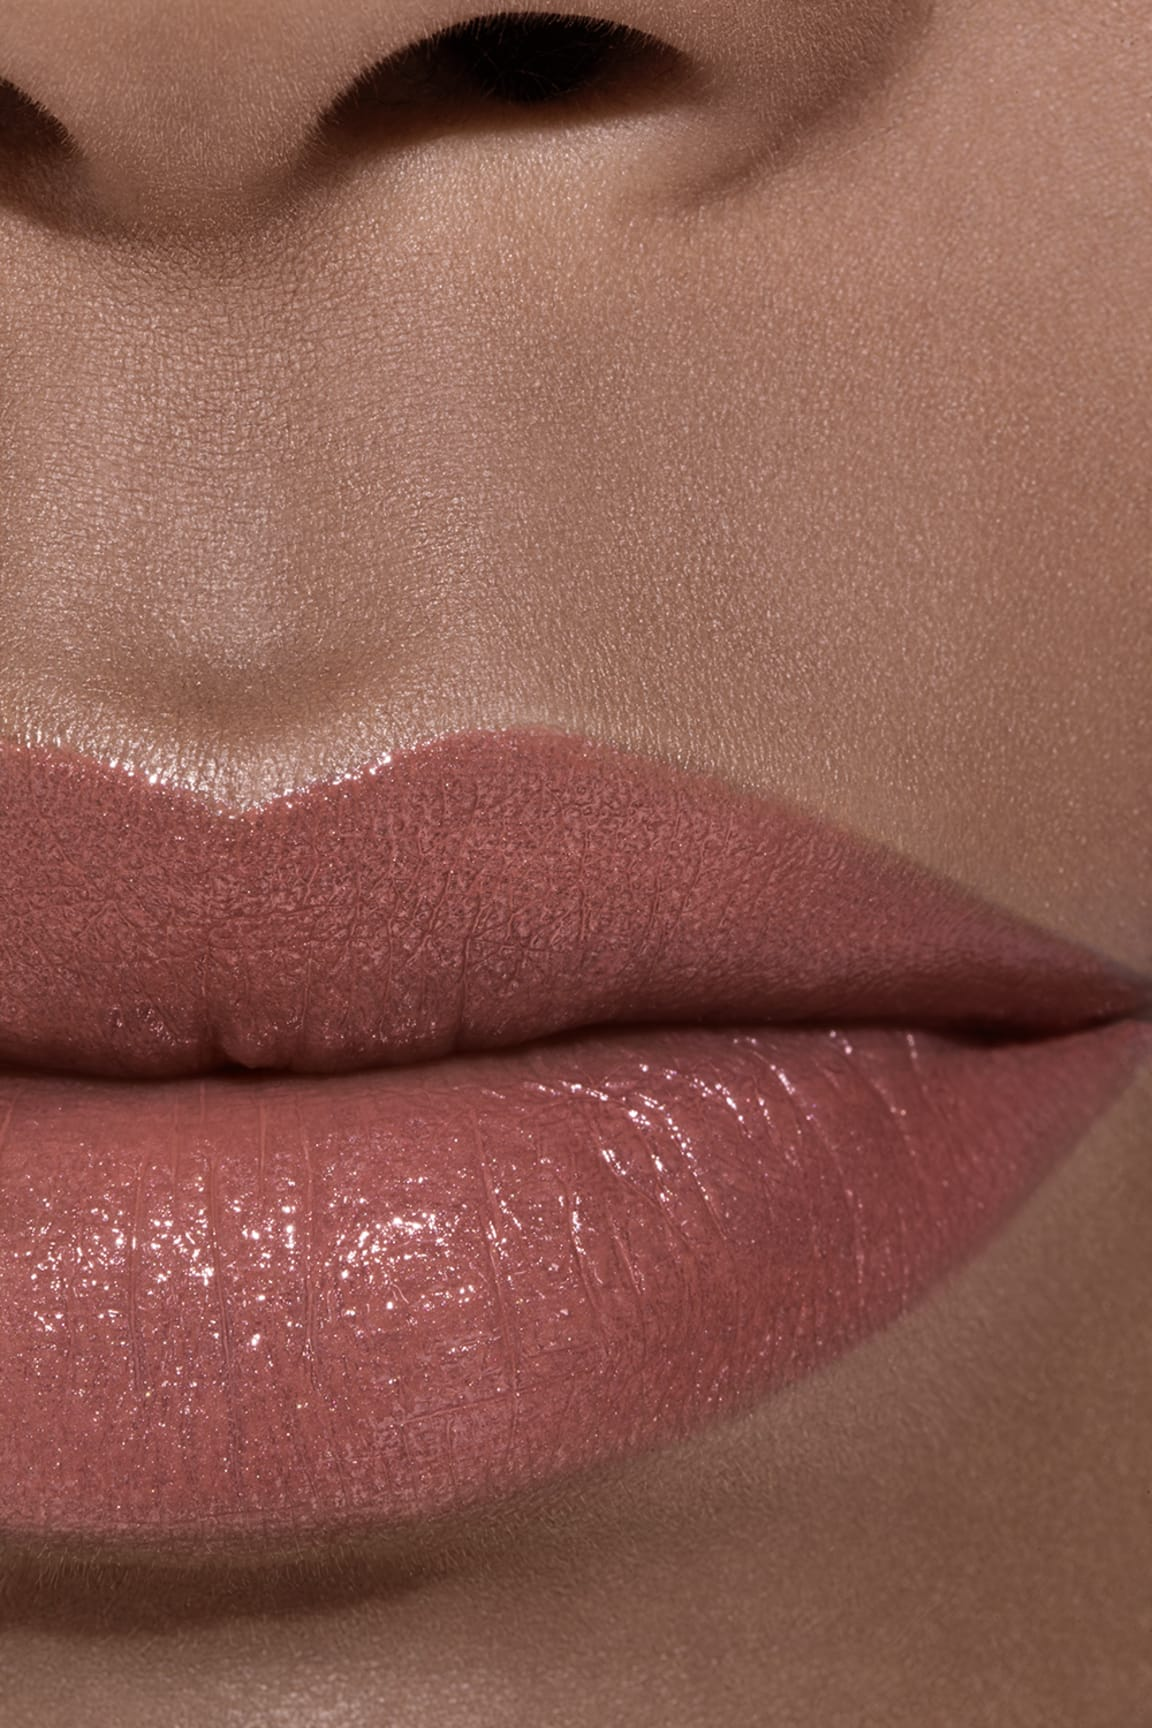 Application makeup visual 2 - ROUGE COCO 402 - ADRIENNE